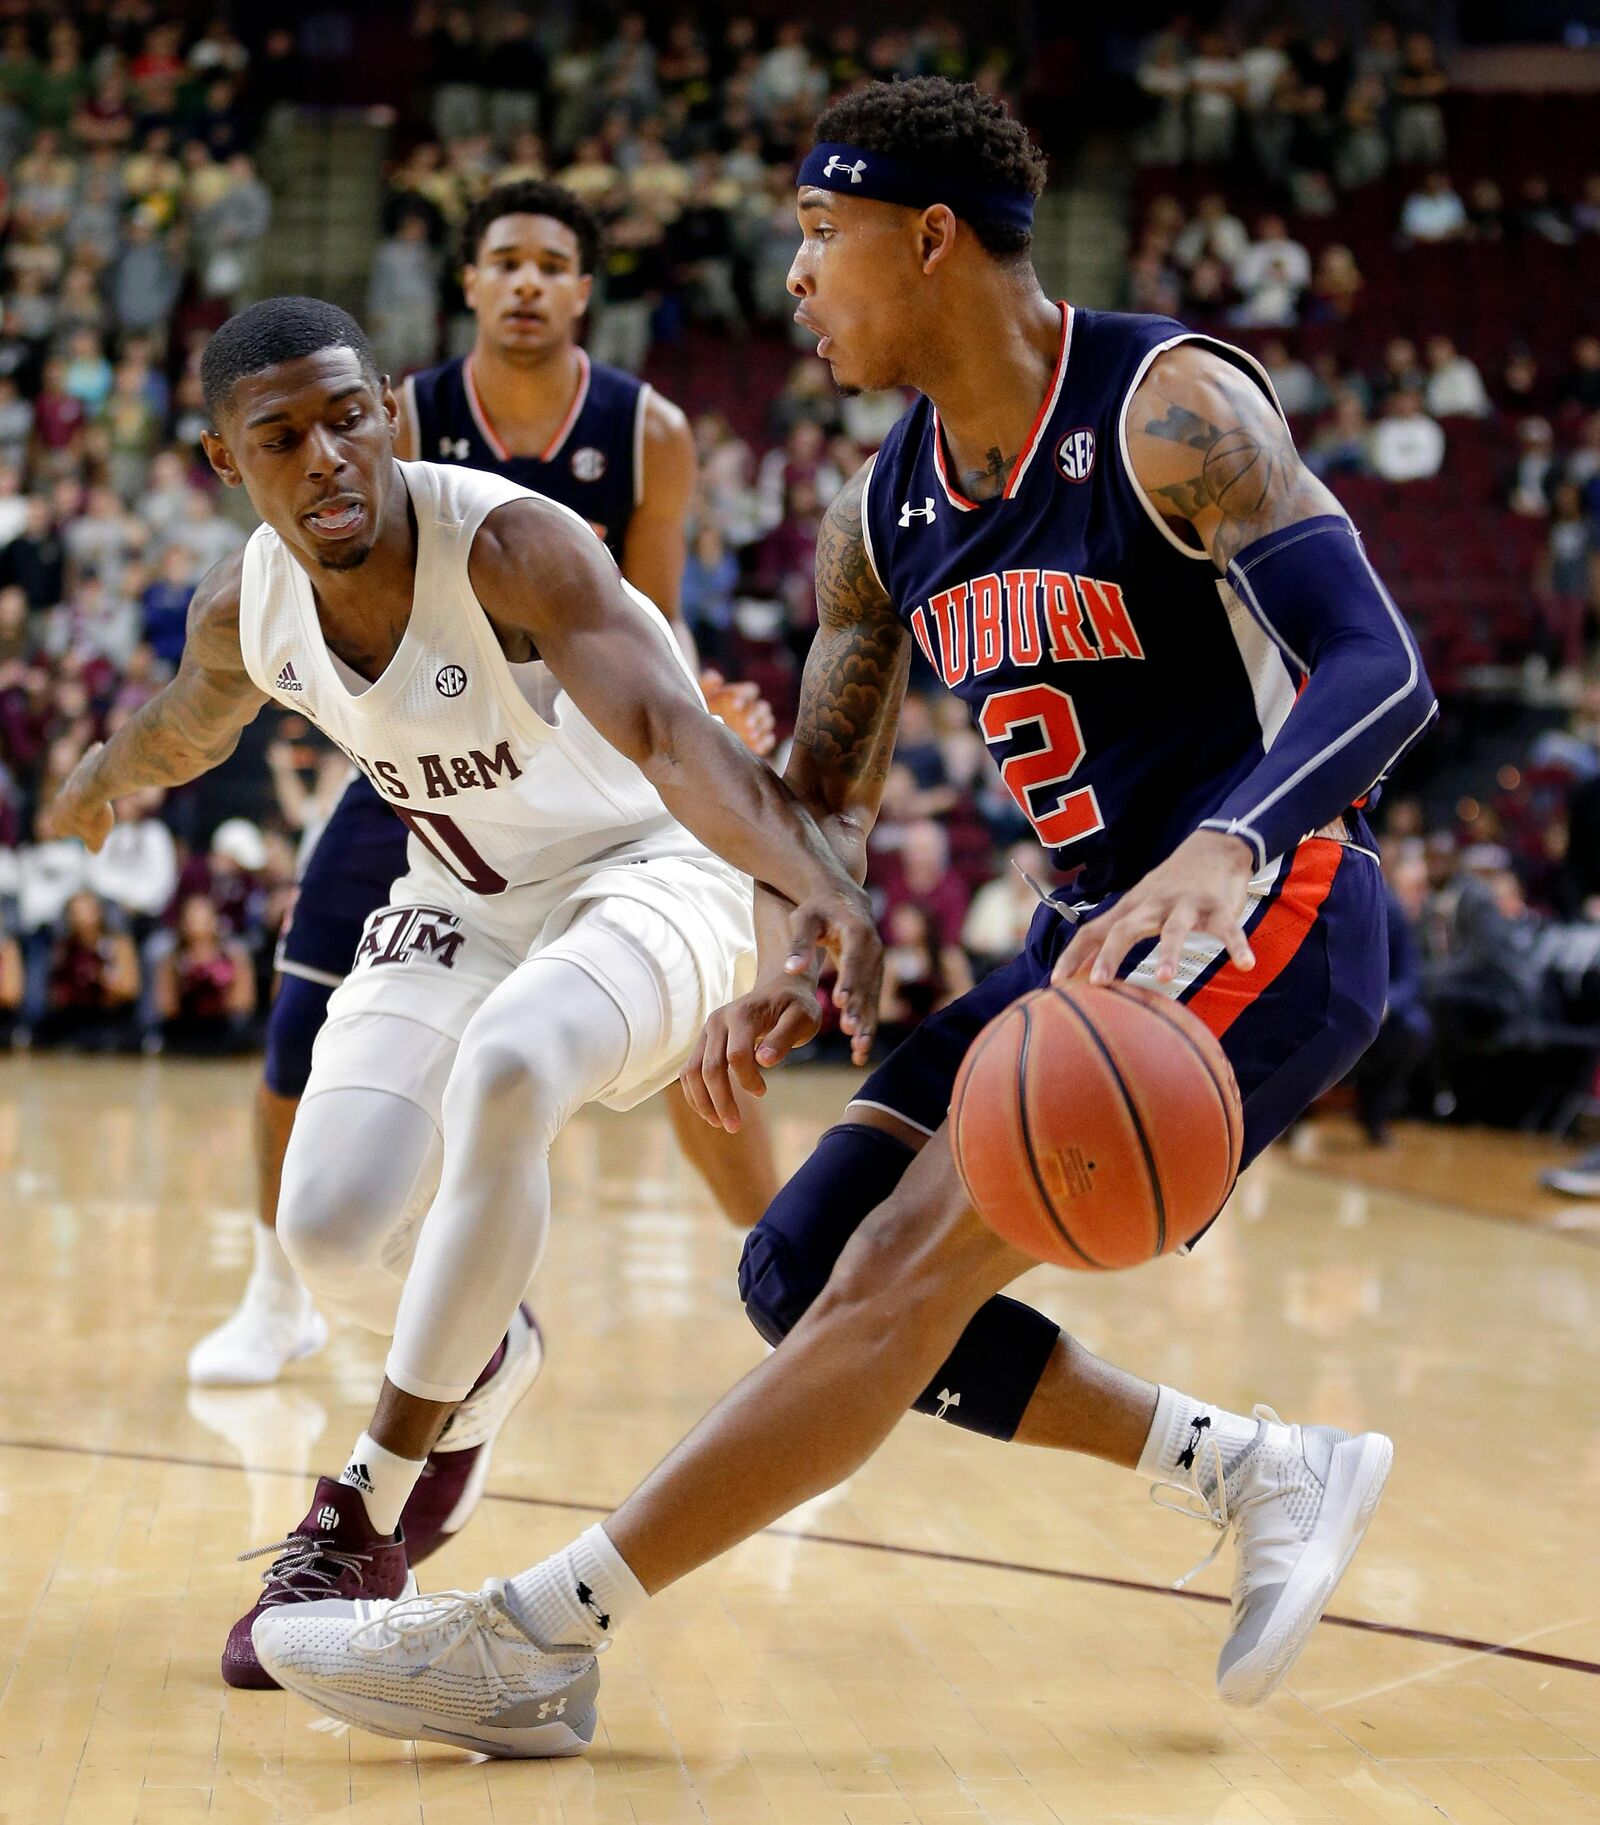 Auburn guard Bryce Brown (2) looks to drive around Texas A&M guard Jay Jay Chandler (0) as he reaches in for the ball during the second half of an NCAA college basketball game, Wednesday, Jan. 16, 2019, in College Station, Texas. (AP Photo/Michael Wyke)